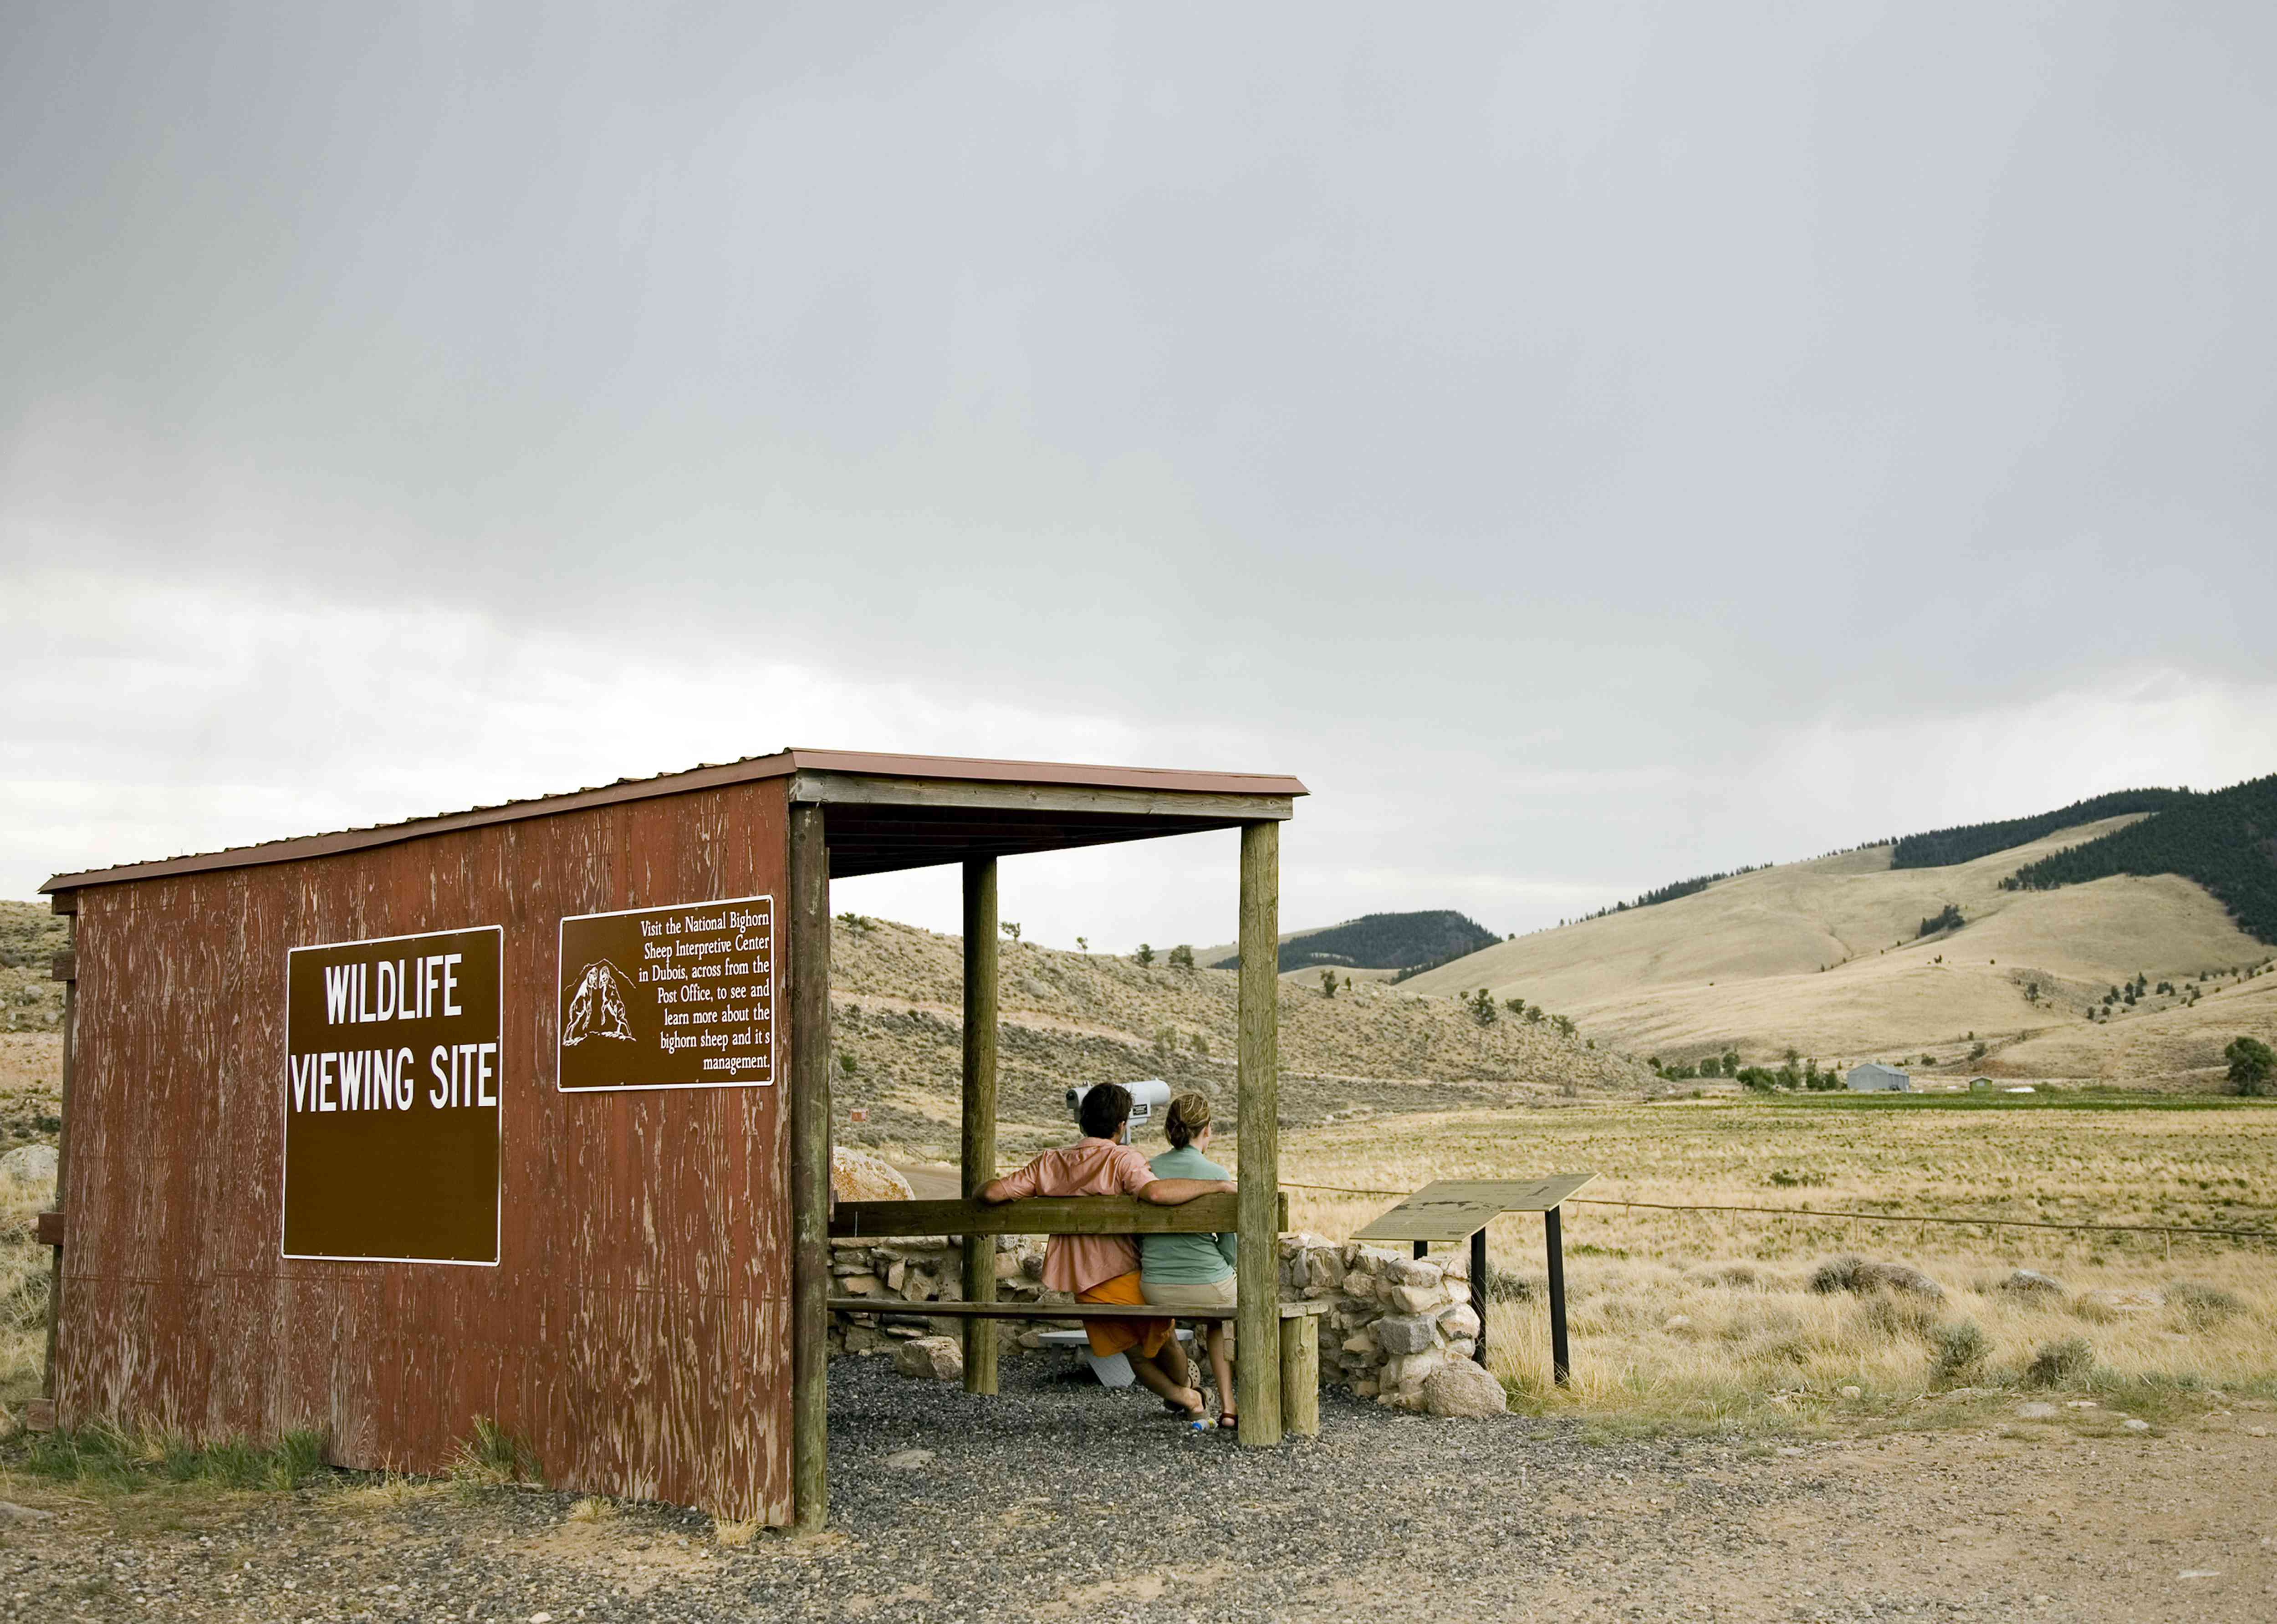 Couple sitting at National Bighorn Sheep Center wildlife viewing site